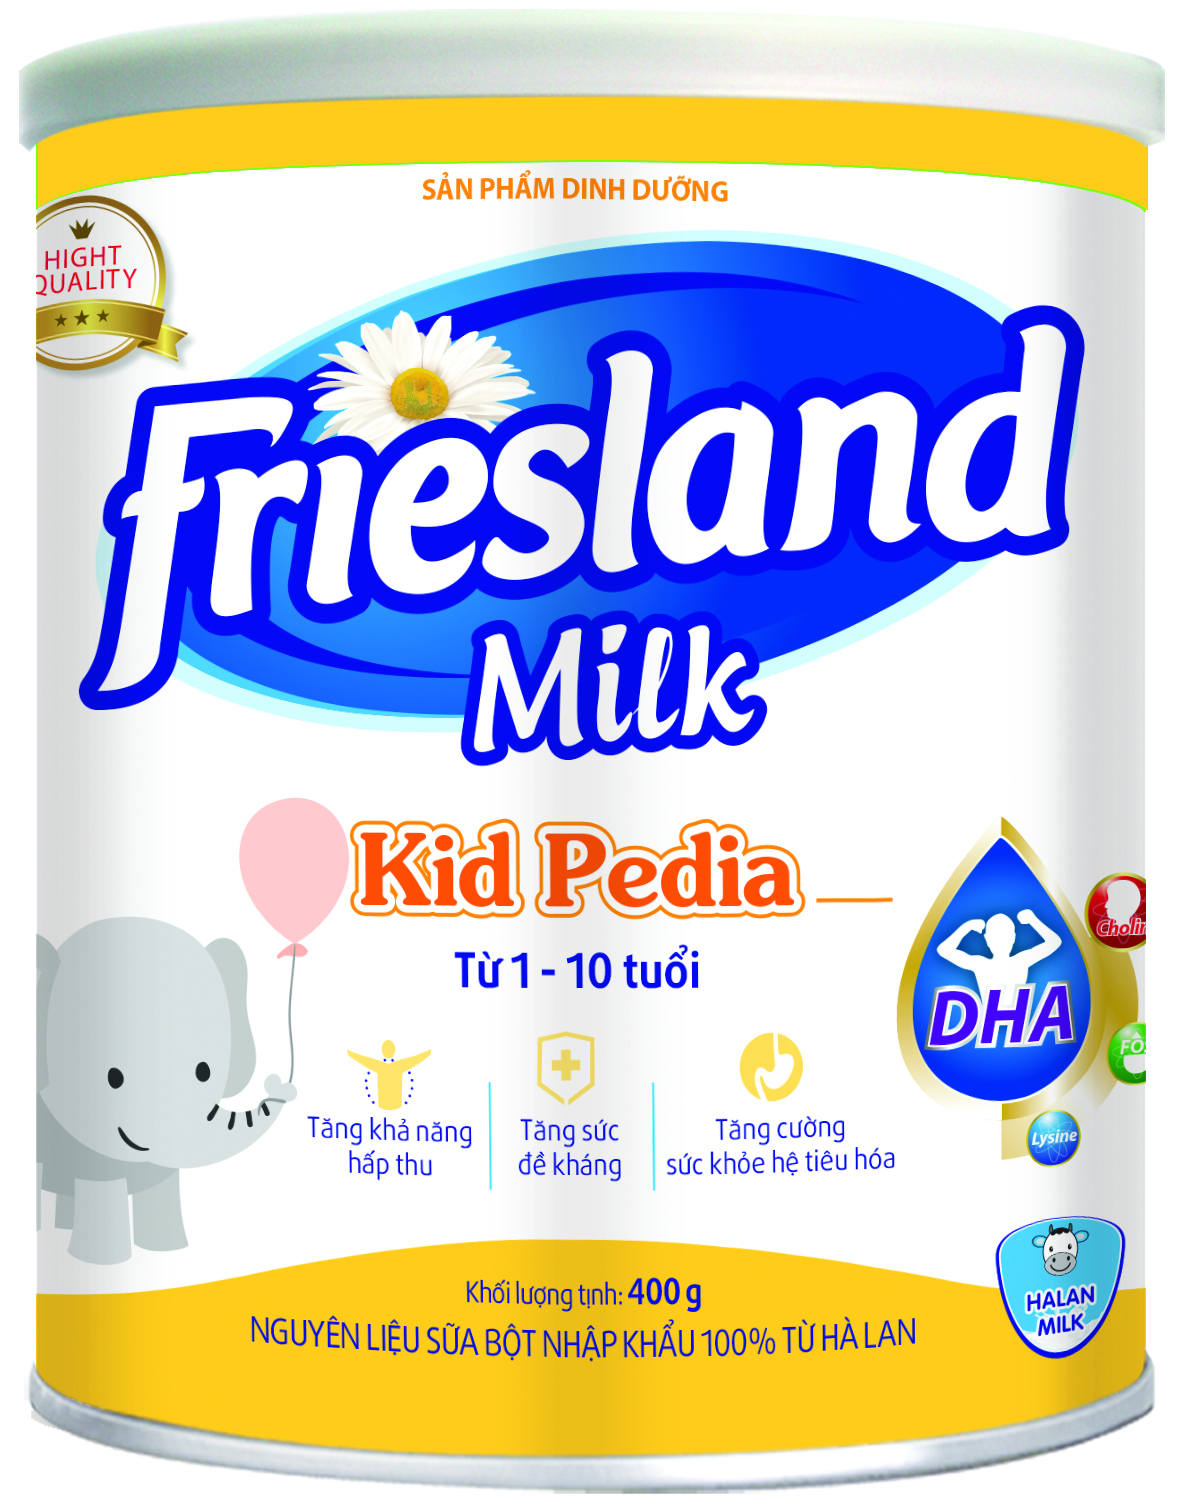 FRIESLAND MILK KIDS PEDIA 400g